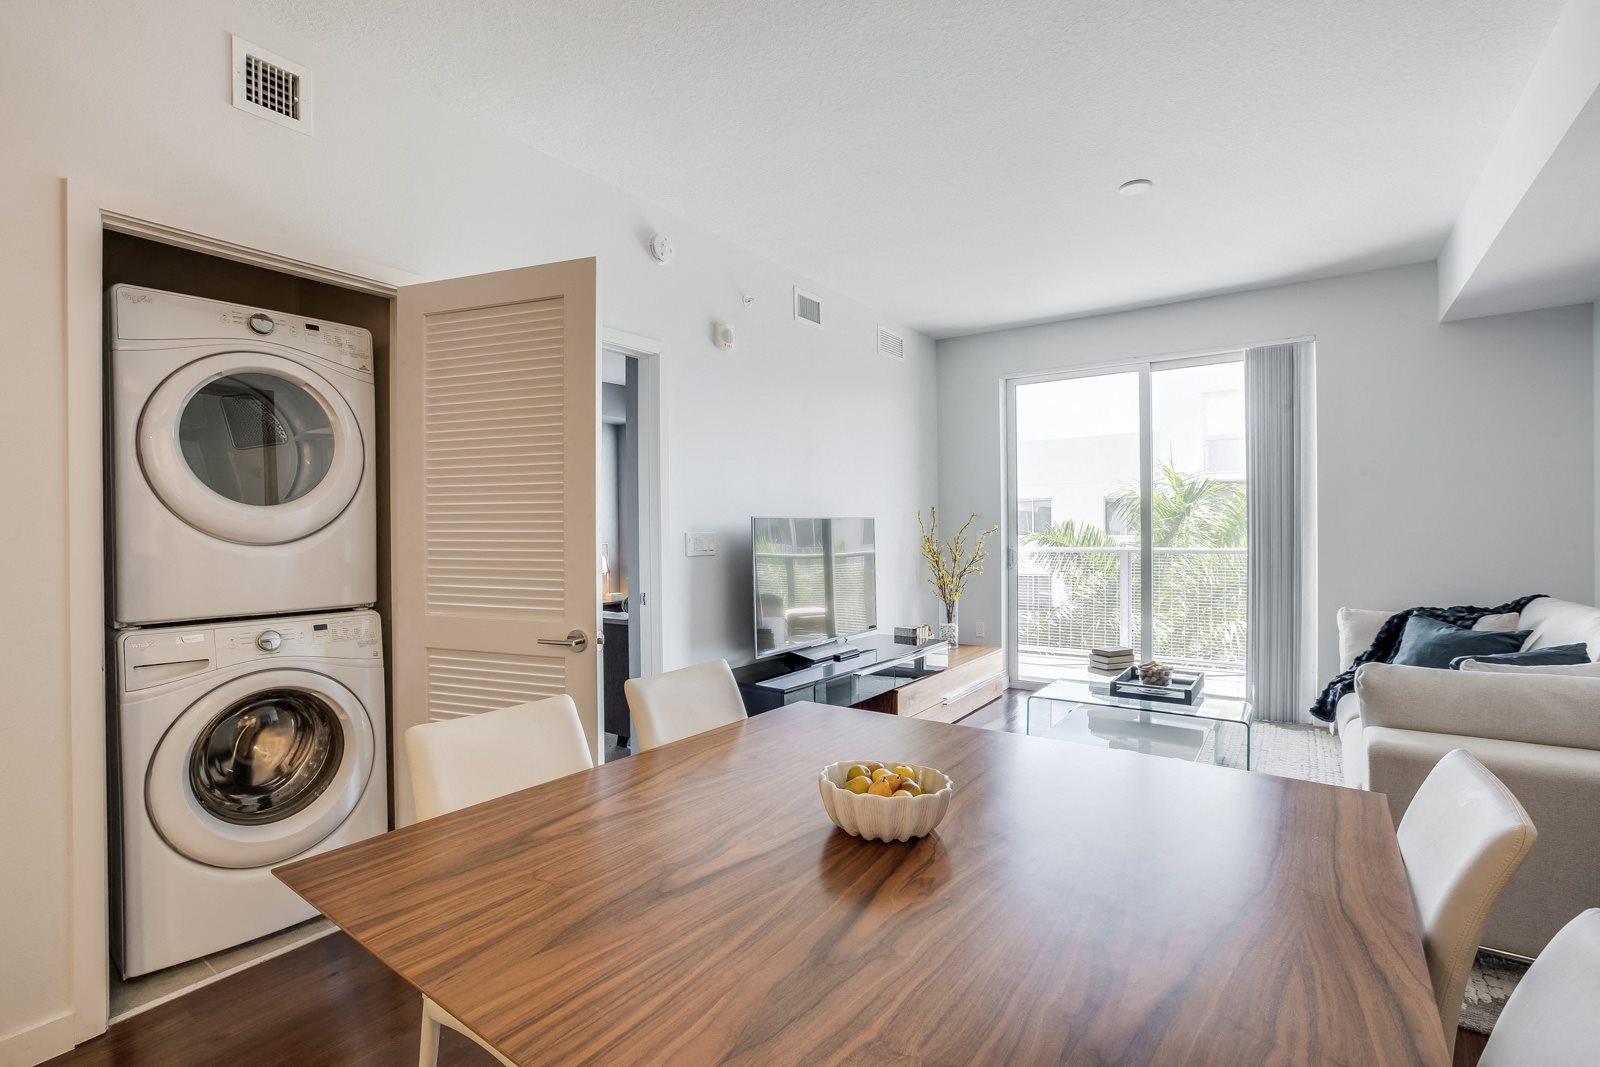 Full Sized Washer and Dryer Included at Allure by Windsor, 6750 Congress Avenue, FL